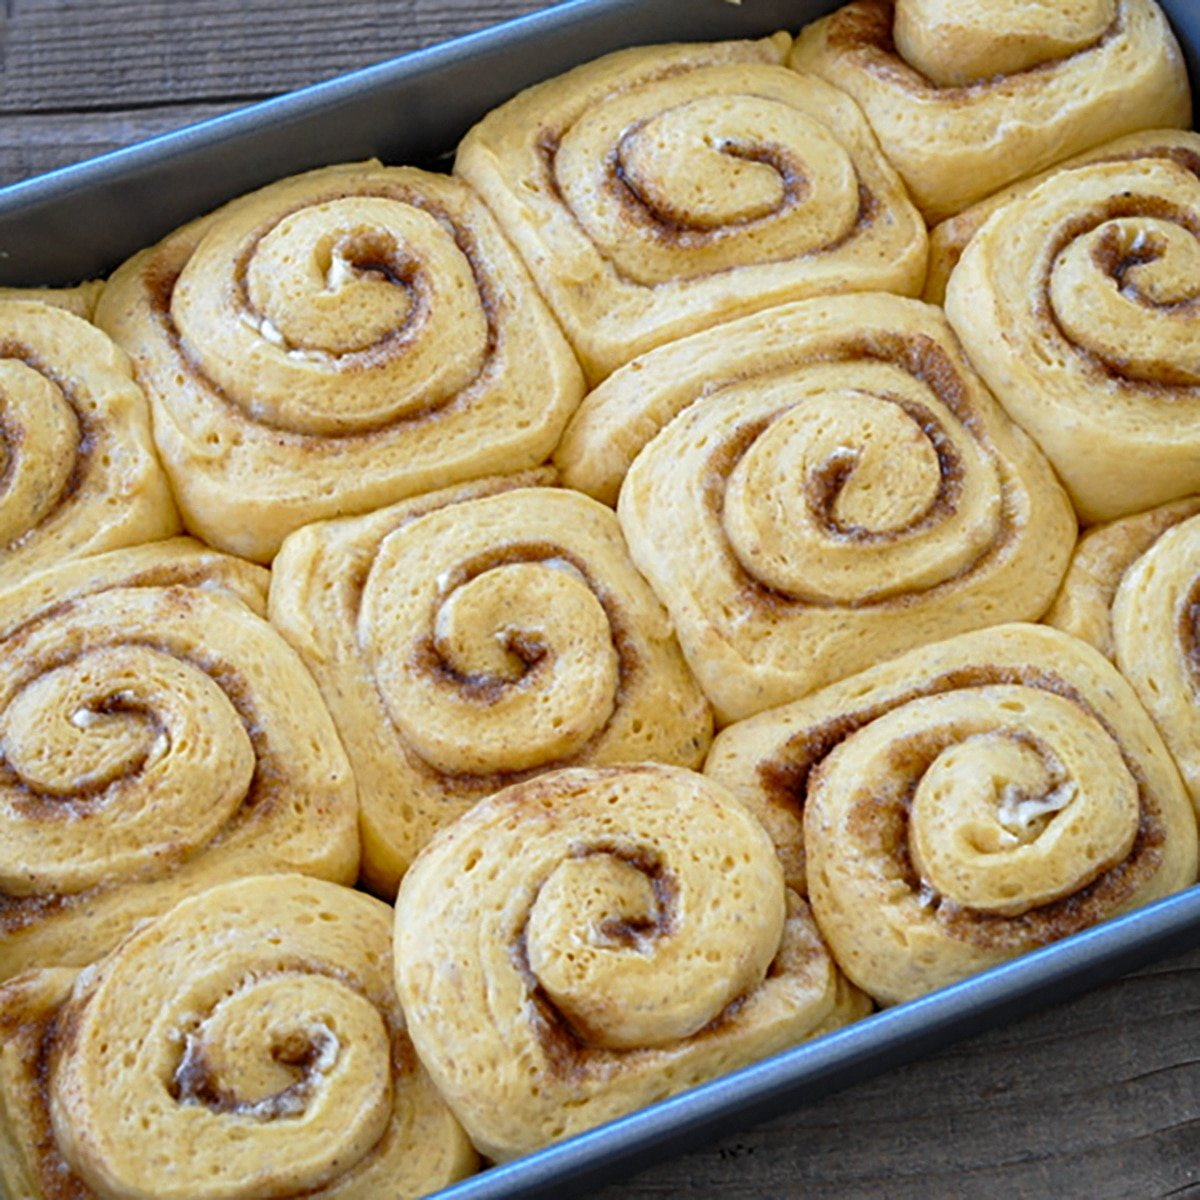 sticky rolls that have raised and are ready to bake